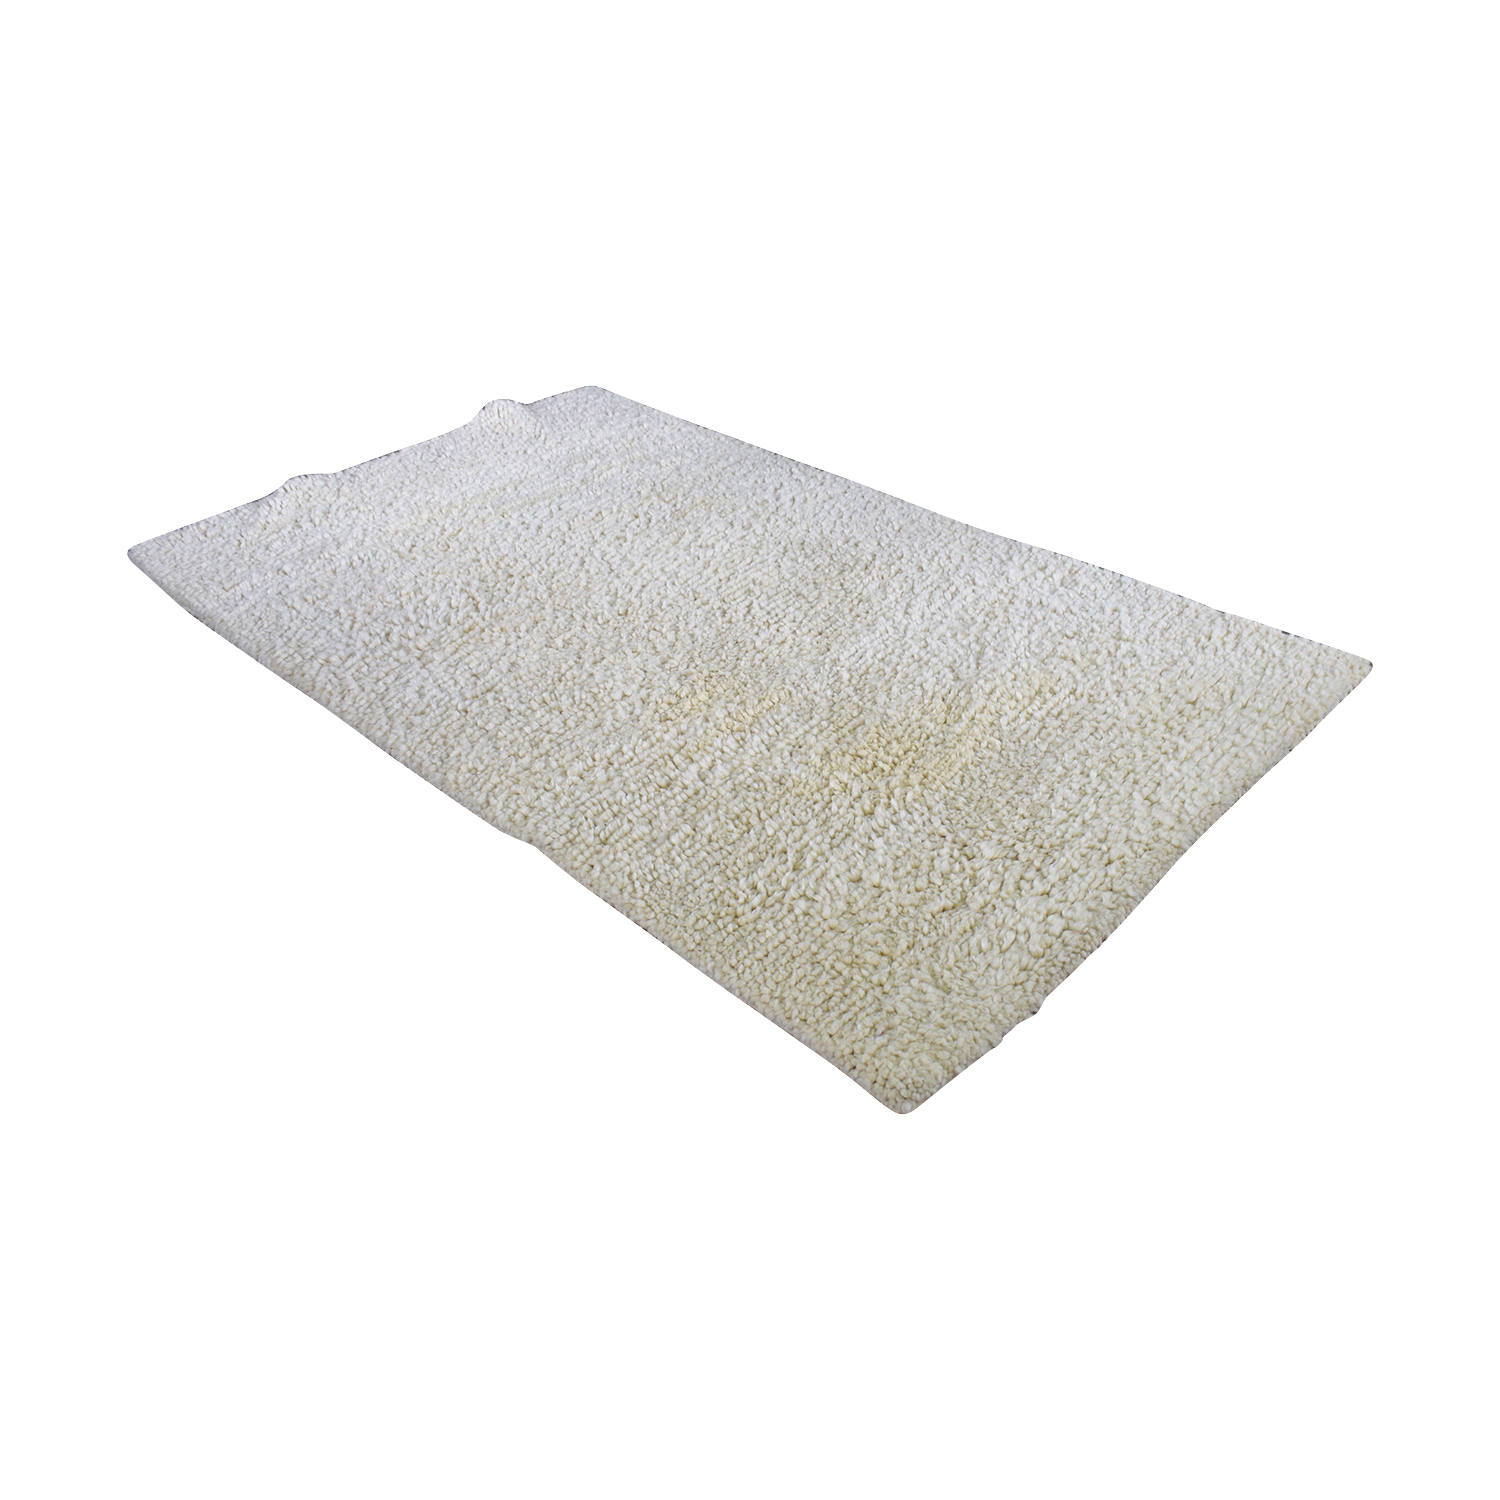 buy Pottery Barn Cream Shag Rug Pottery Barn Decor